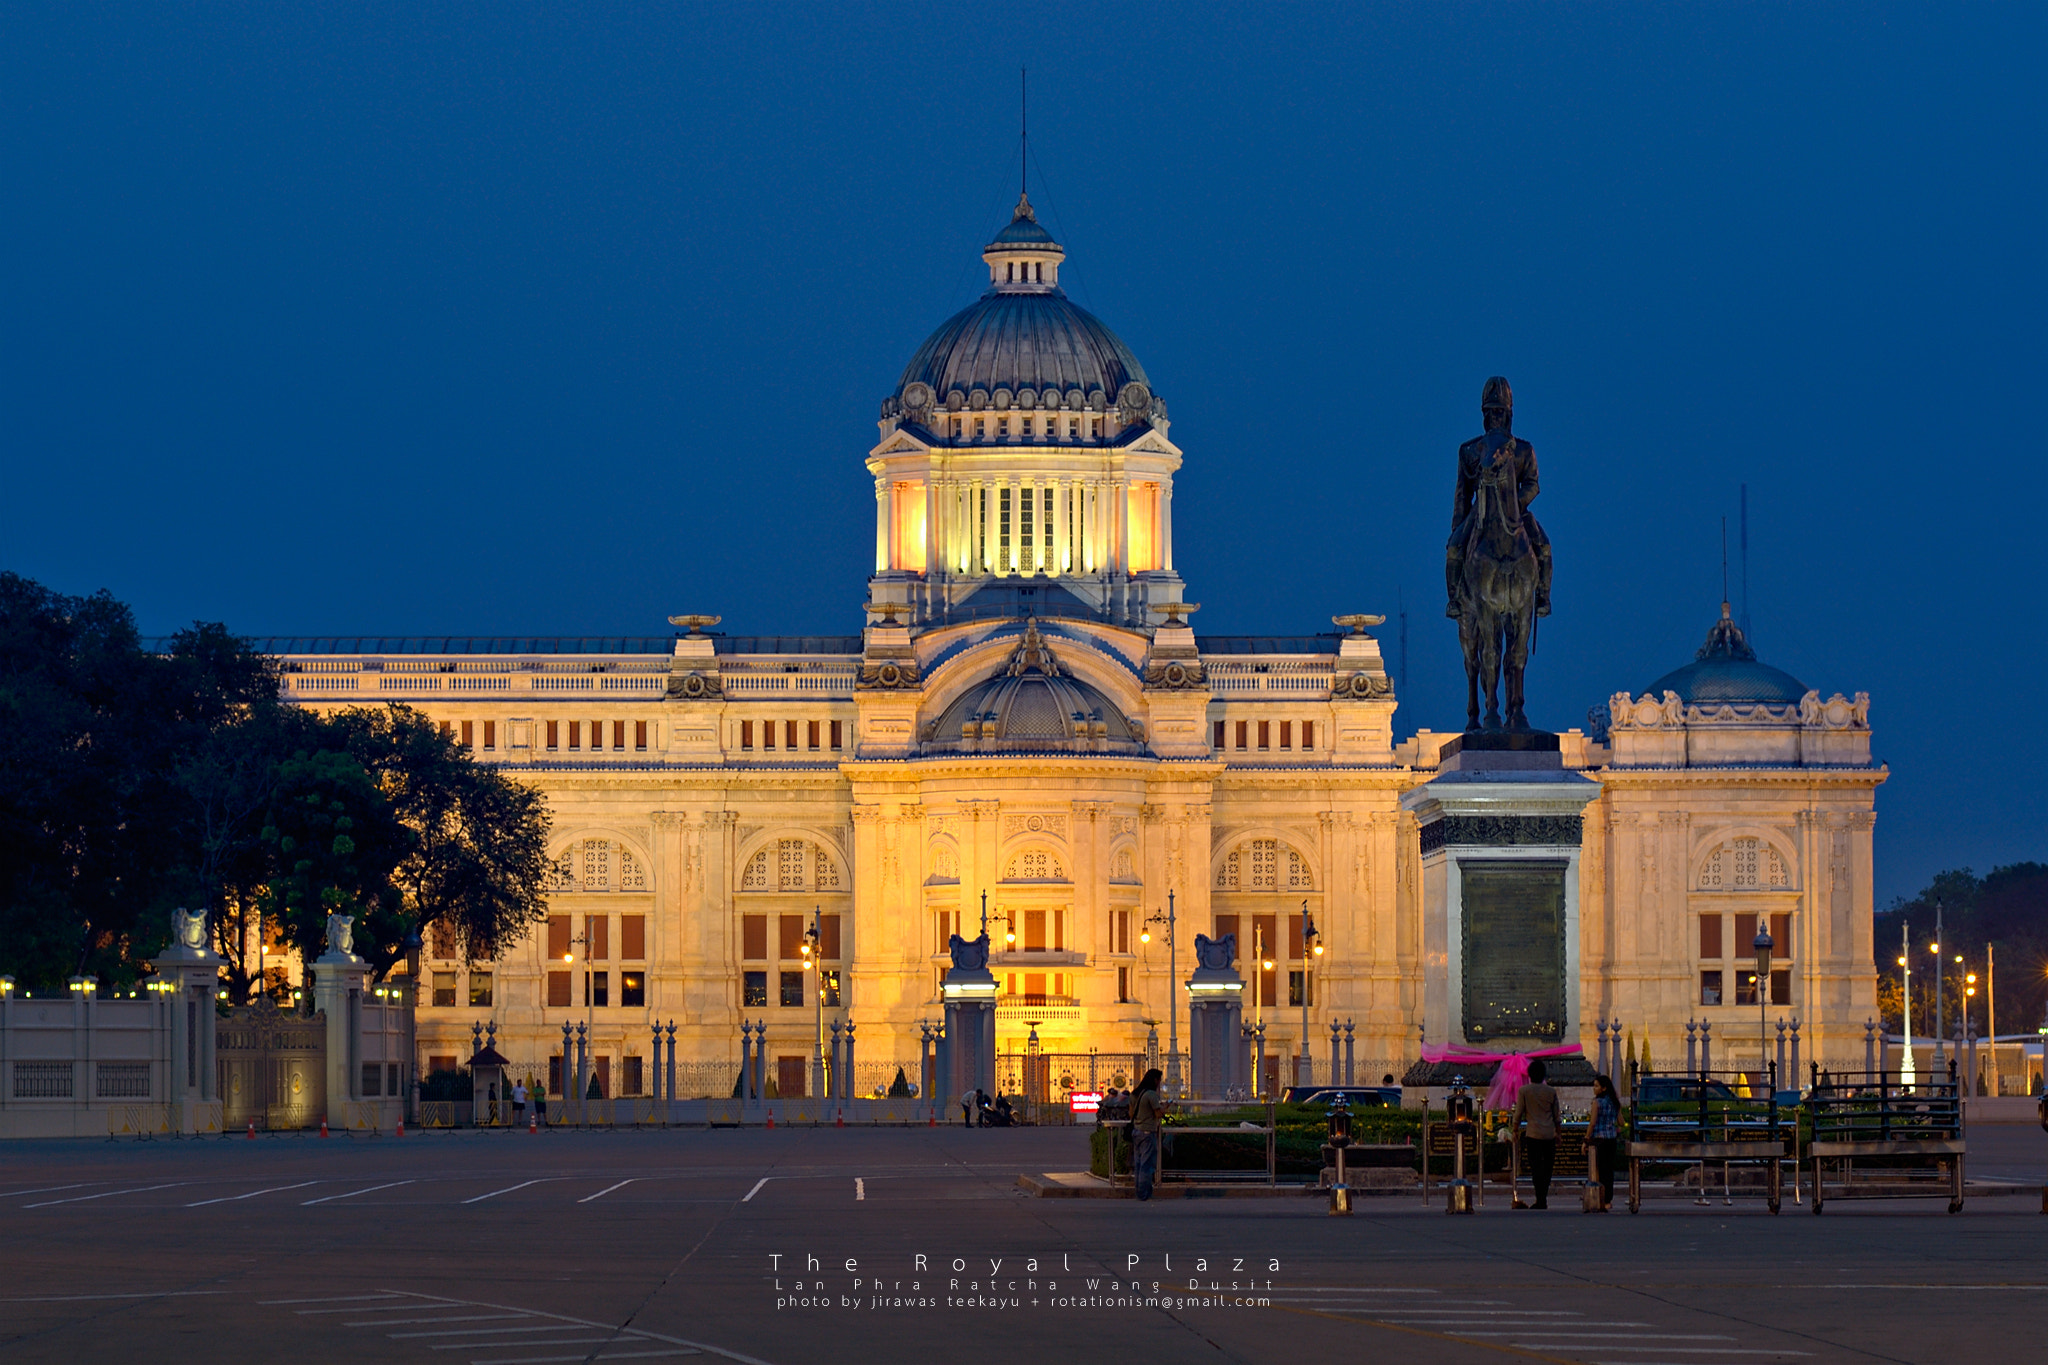 Photograph The Royal Plaza by Jirawas Teekayu on 500px